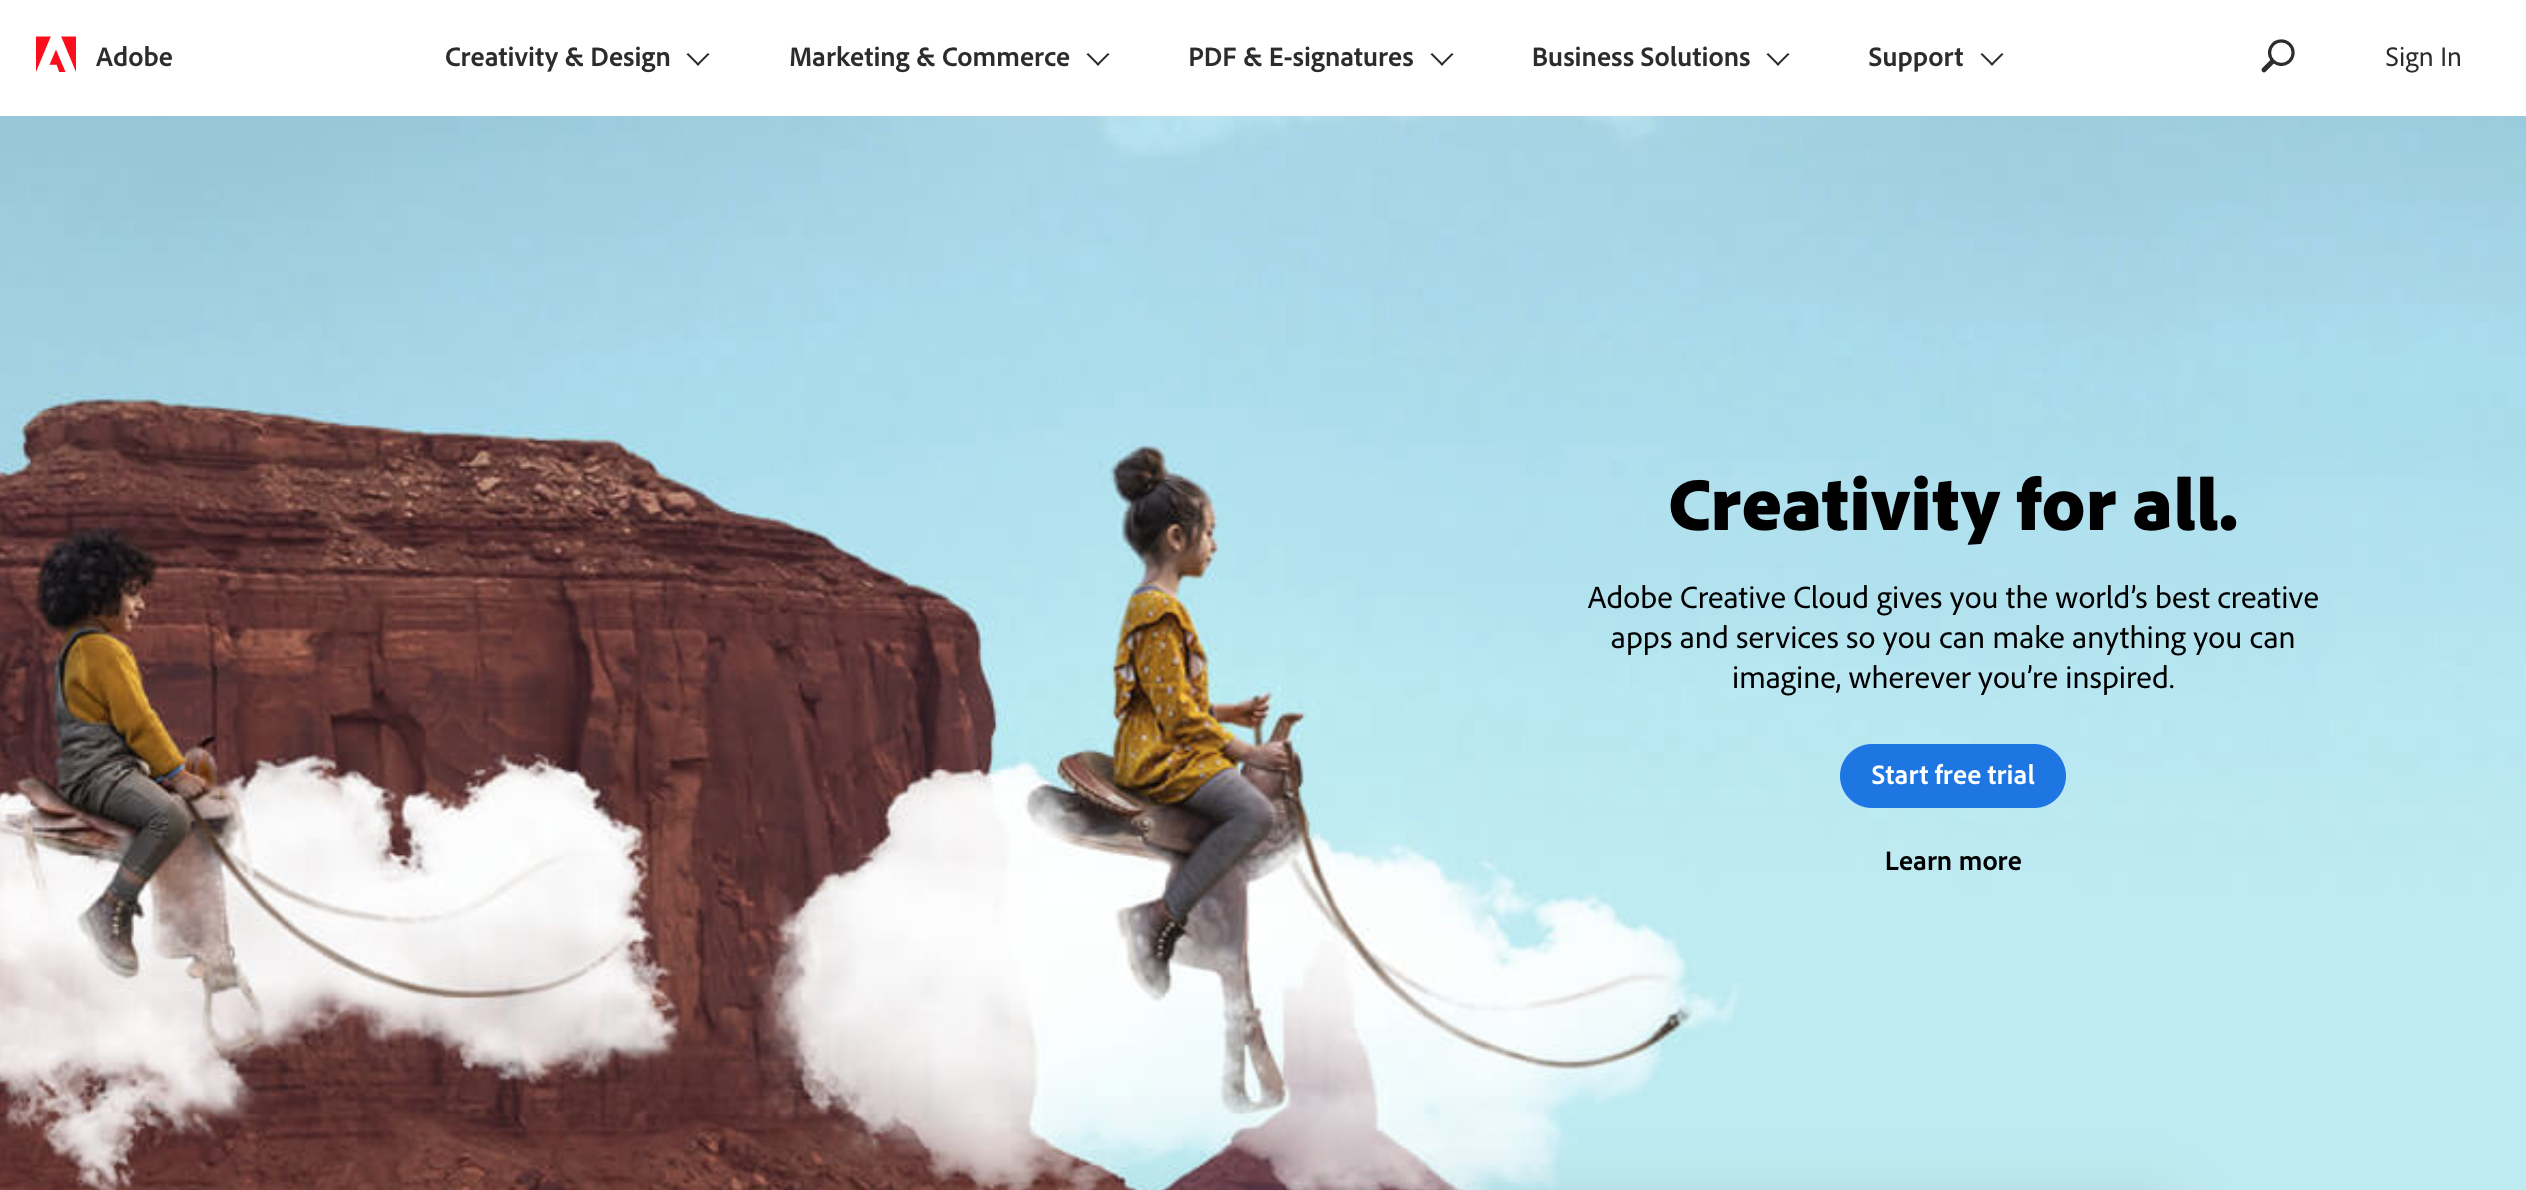 Adobe new website